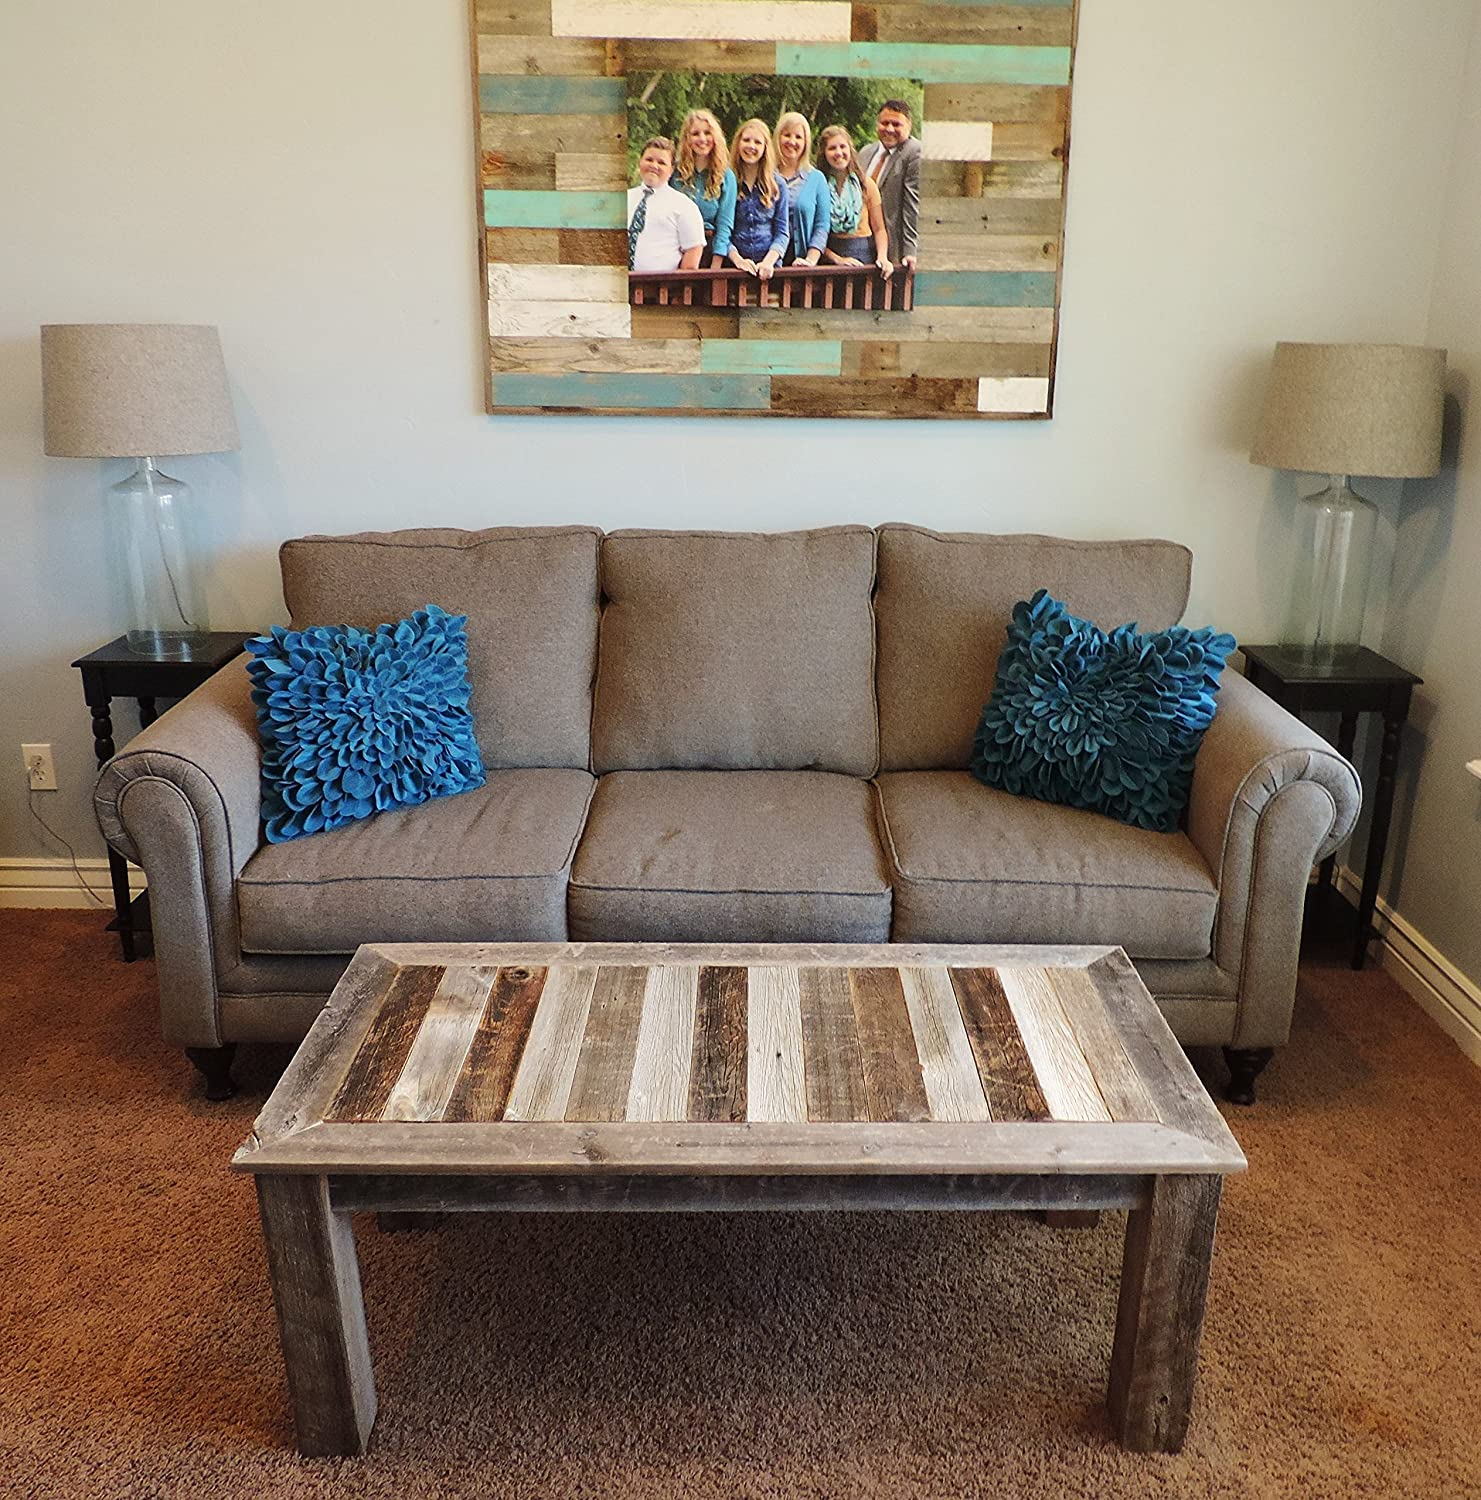 "Amazon 24"" X 48"" X 18"" ""Bretton"" style Reclaimed Wood Rustic"